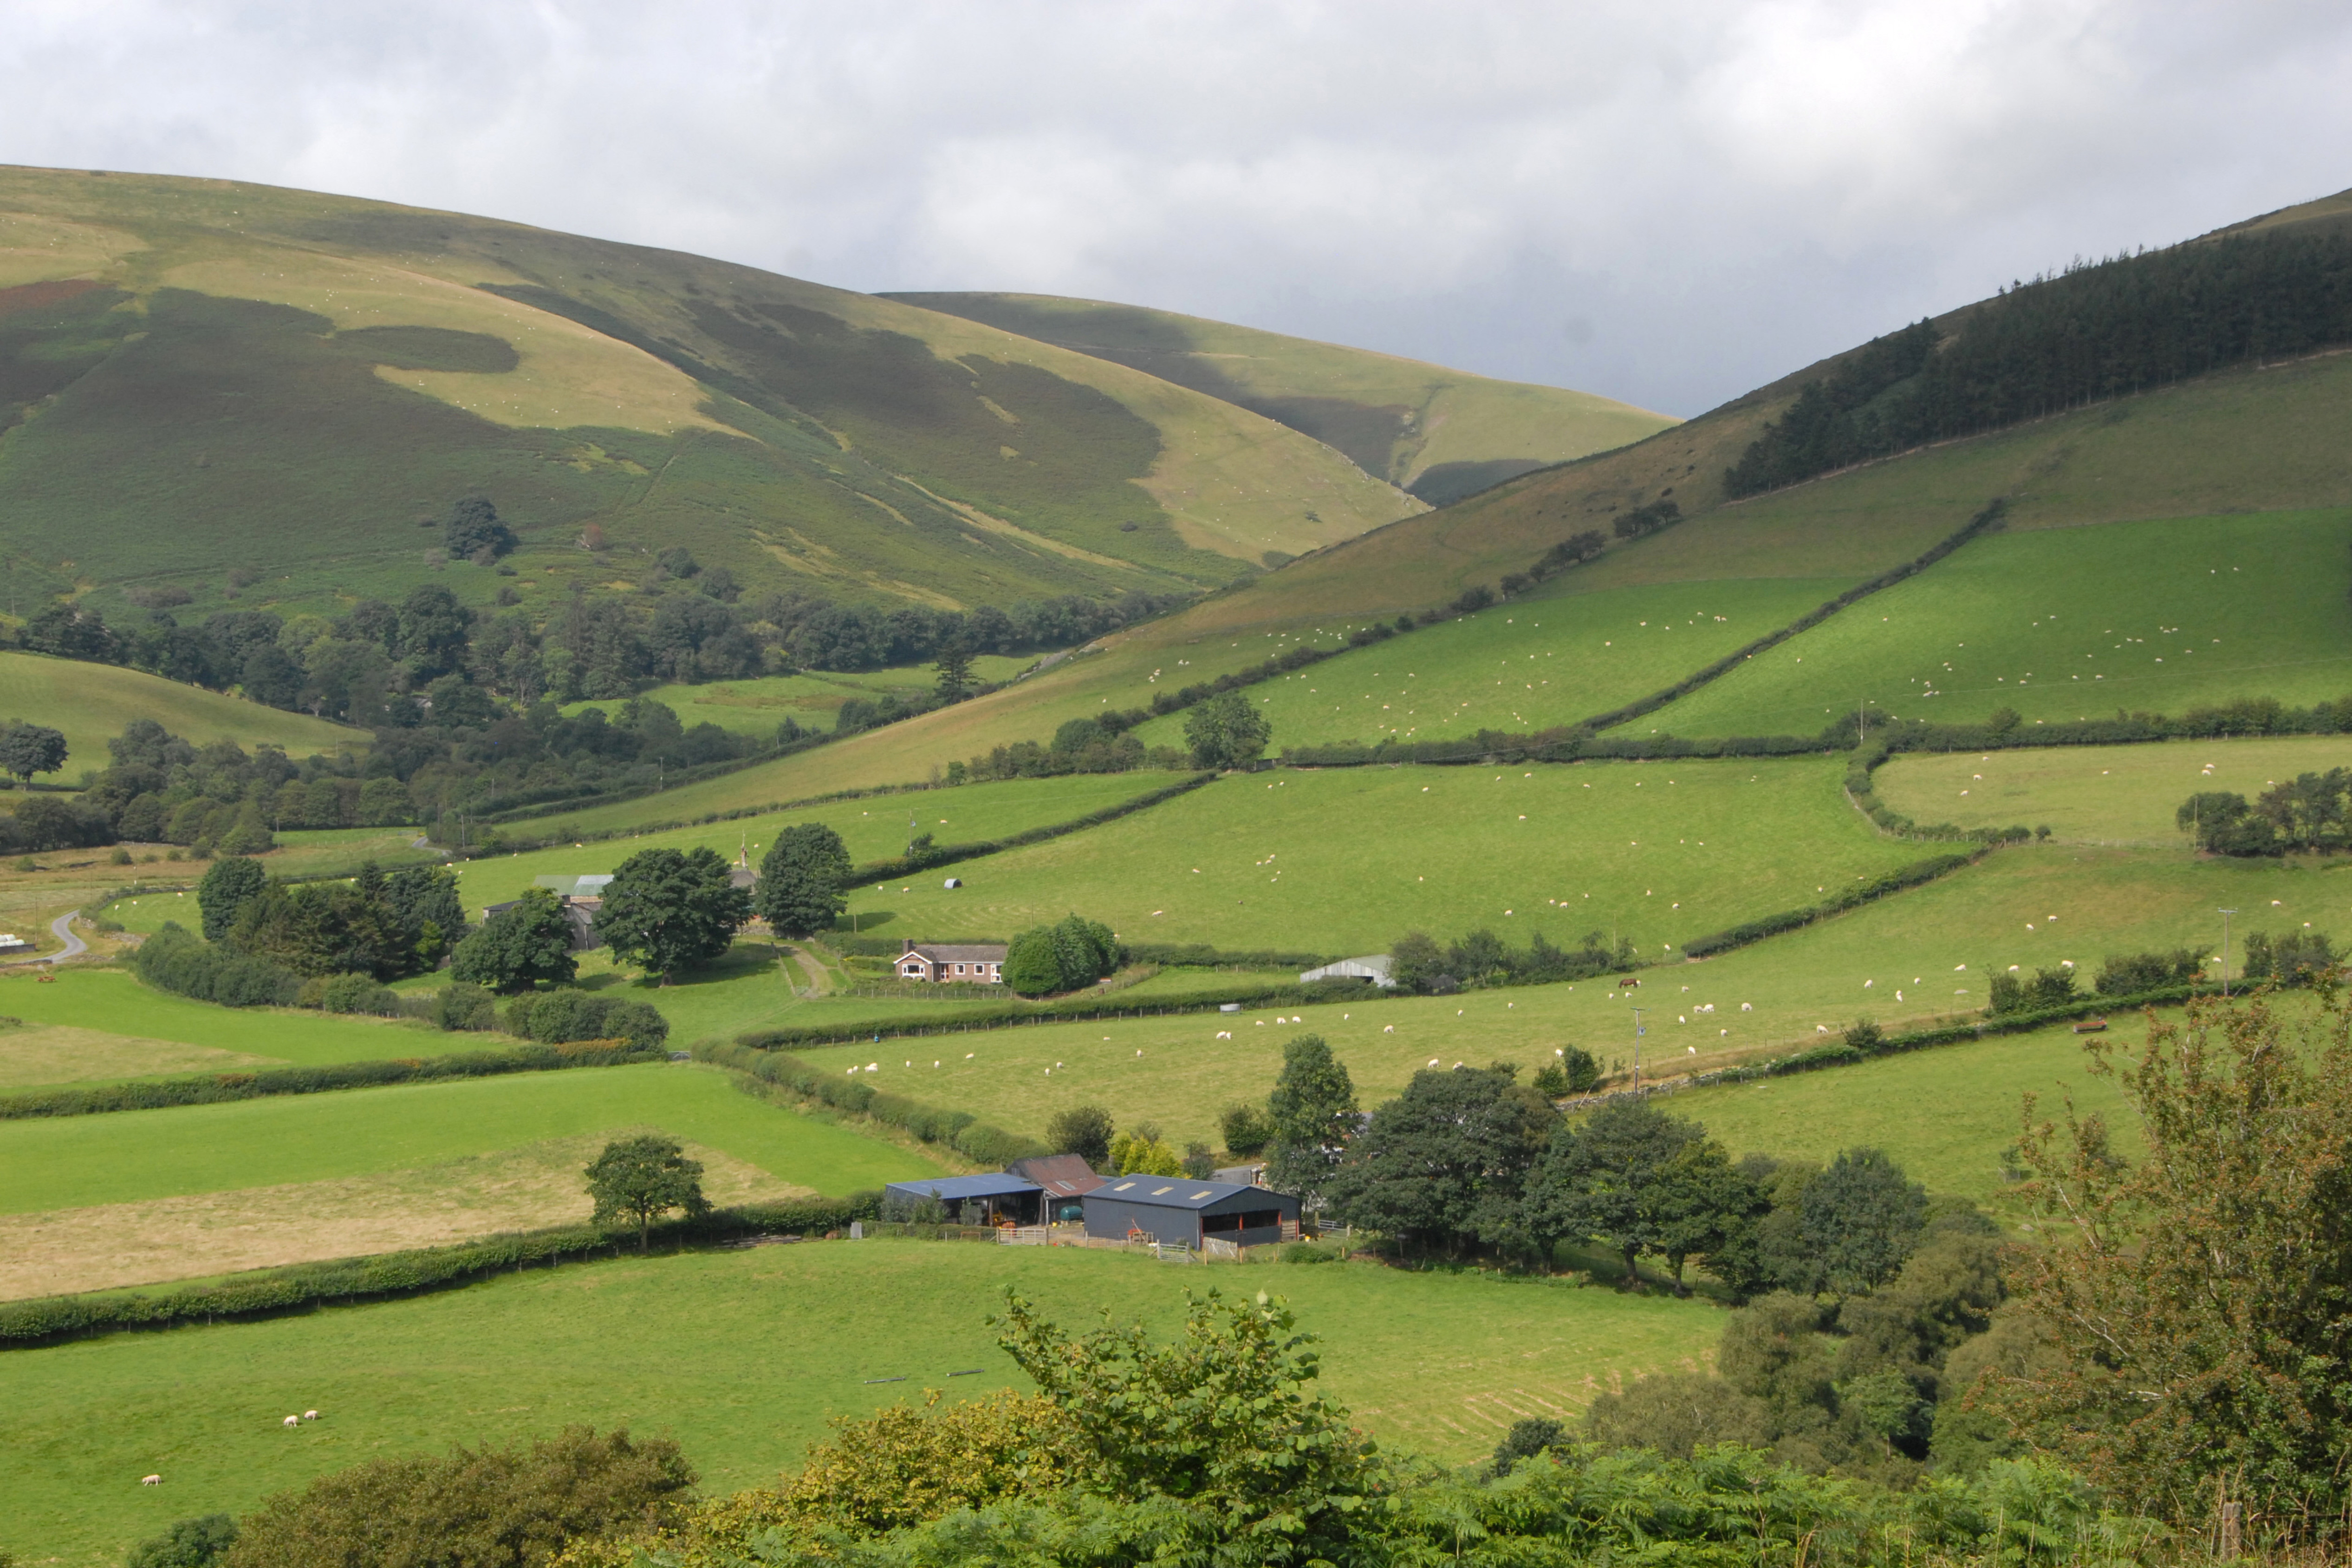 """Campaign for the Protection of Rural Wales claims the geography of much of rural Wales coupled with its climate means it is """"wholly unsuitable for the current explosion of intensive poultry units."""" Photo: Nick Spurling/REX/Shutterstock"""